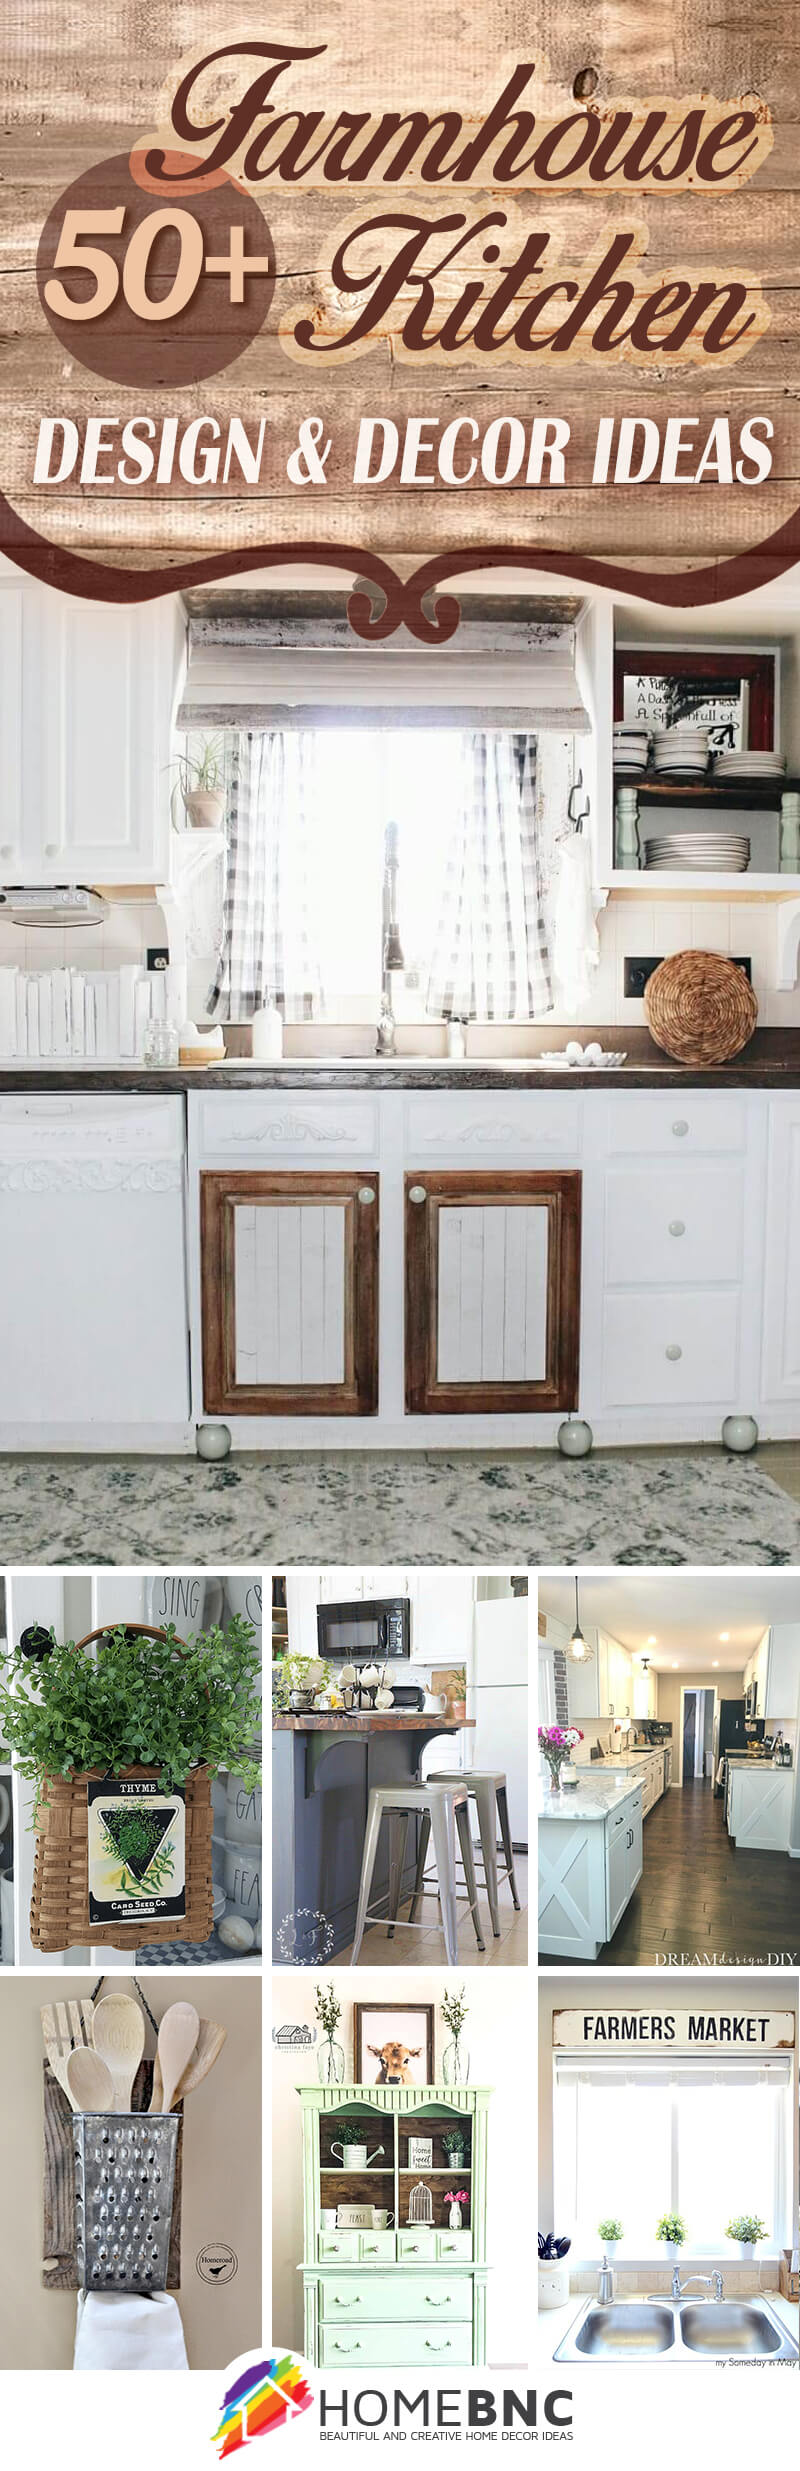 50 Best Farmhouse Kitchen Decor And Design Ideas For 2020